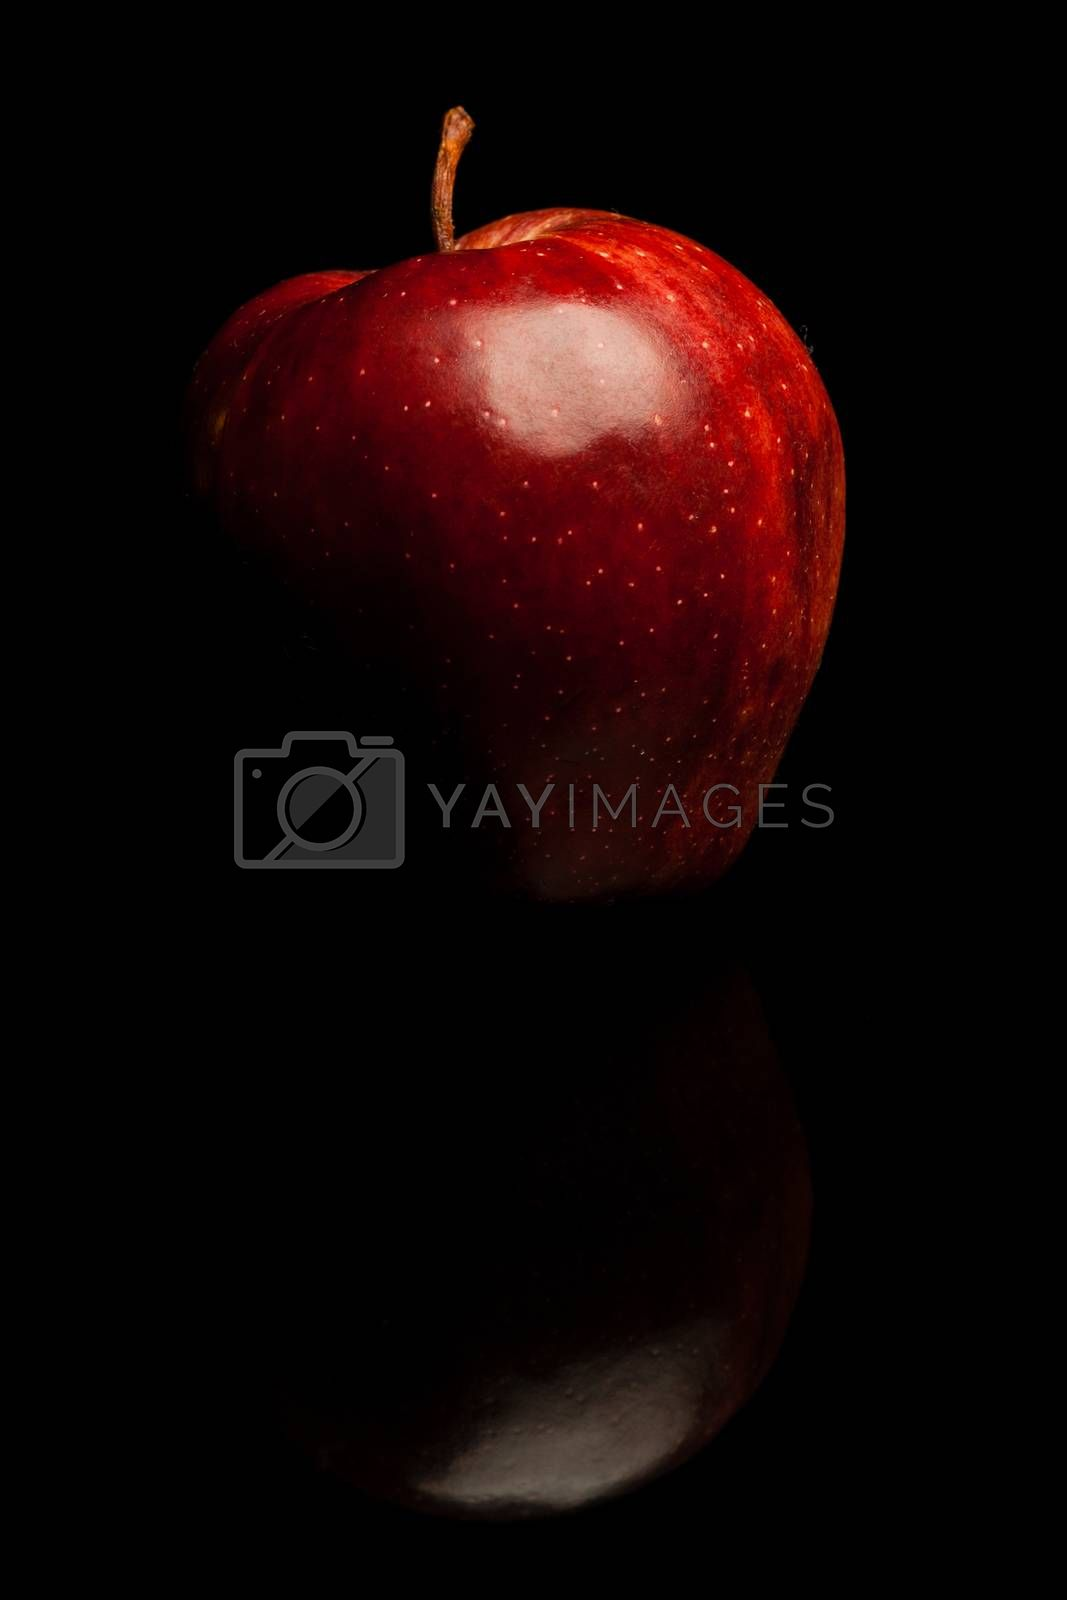 Royalty free image of apple by furo_felix